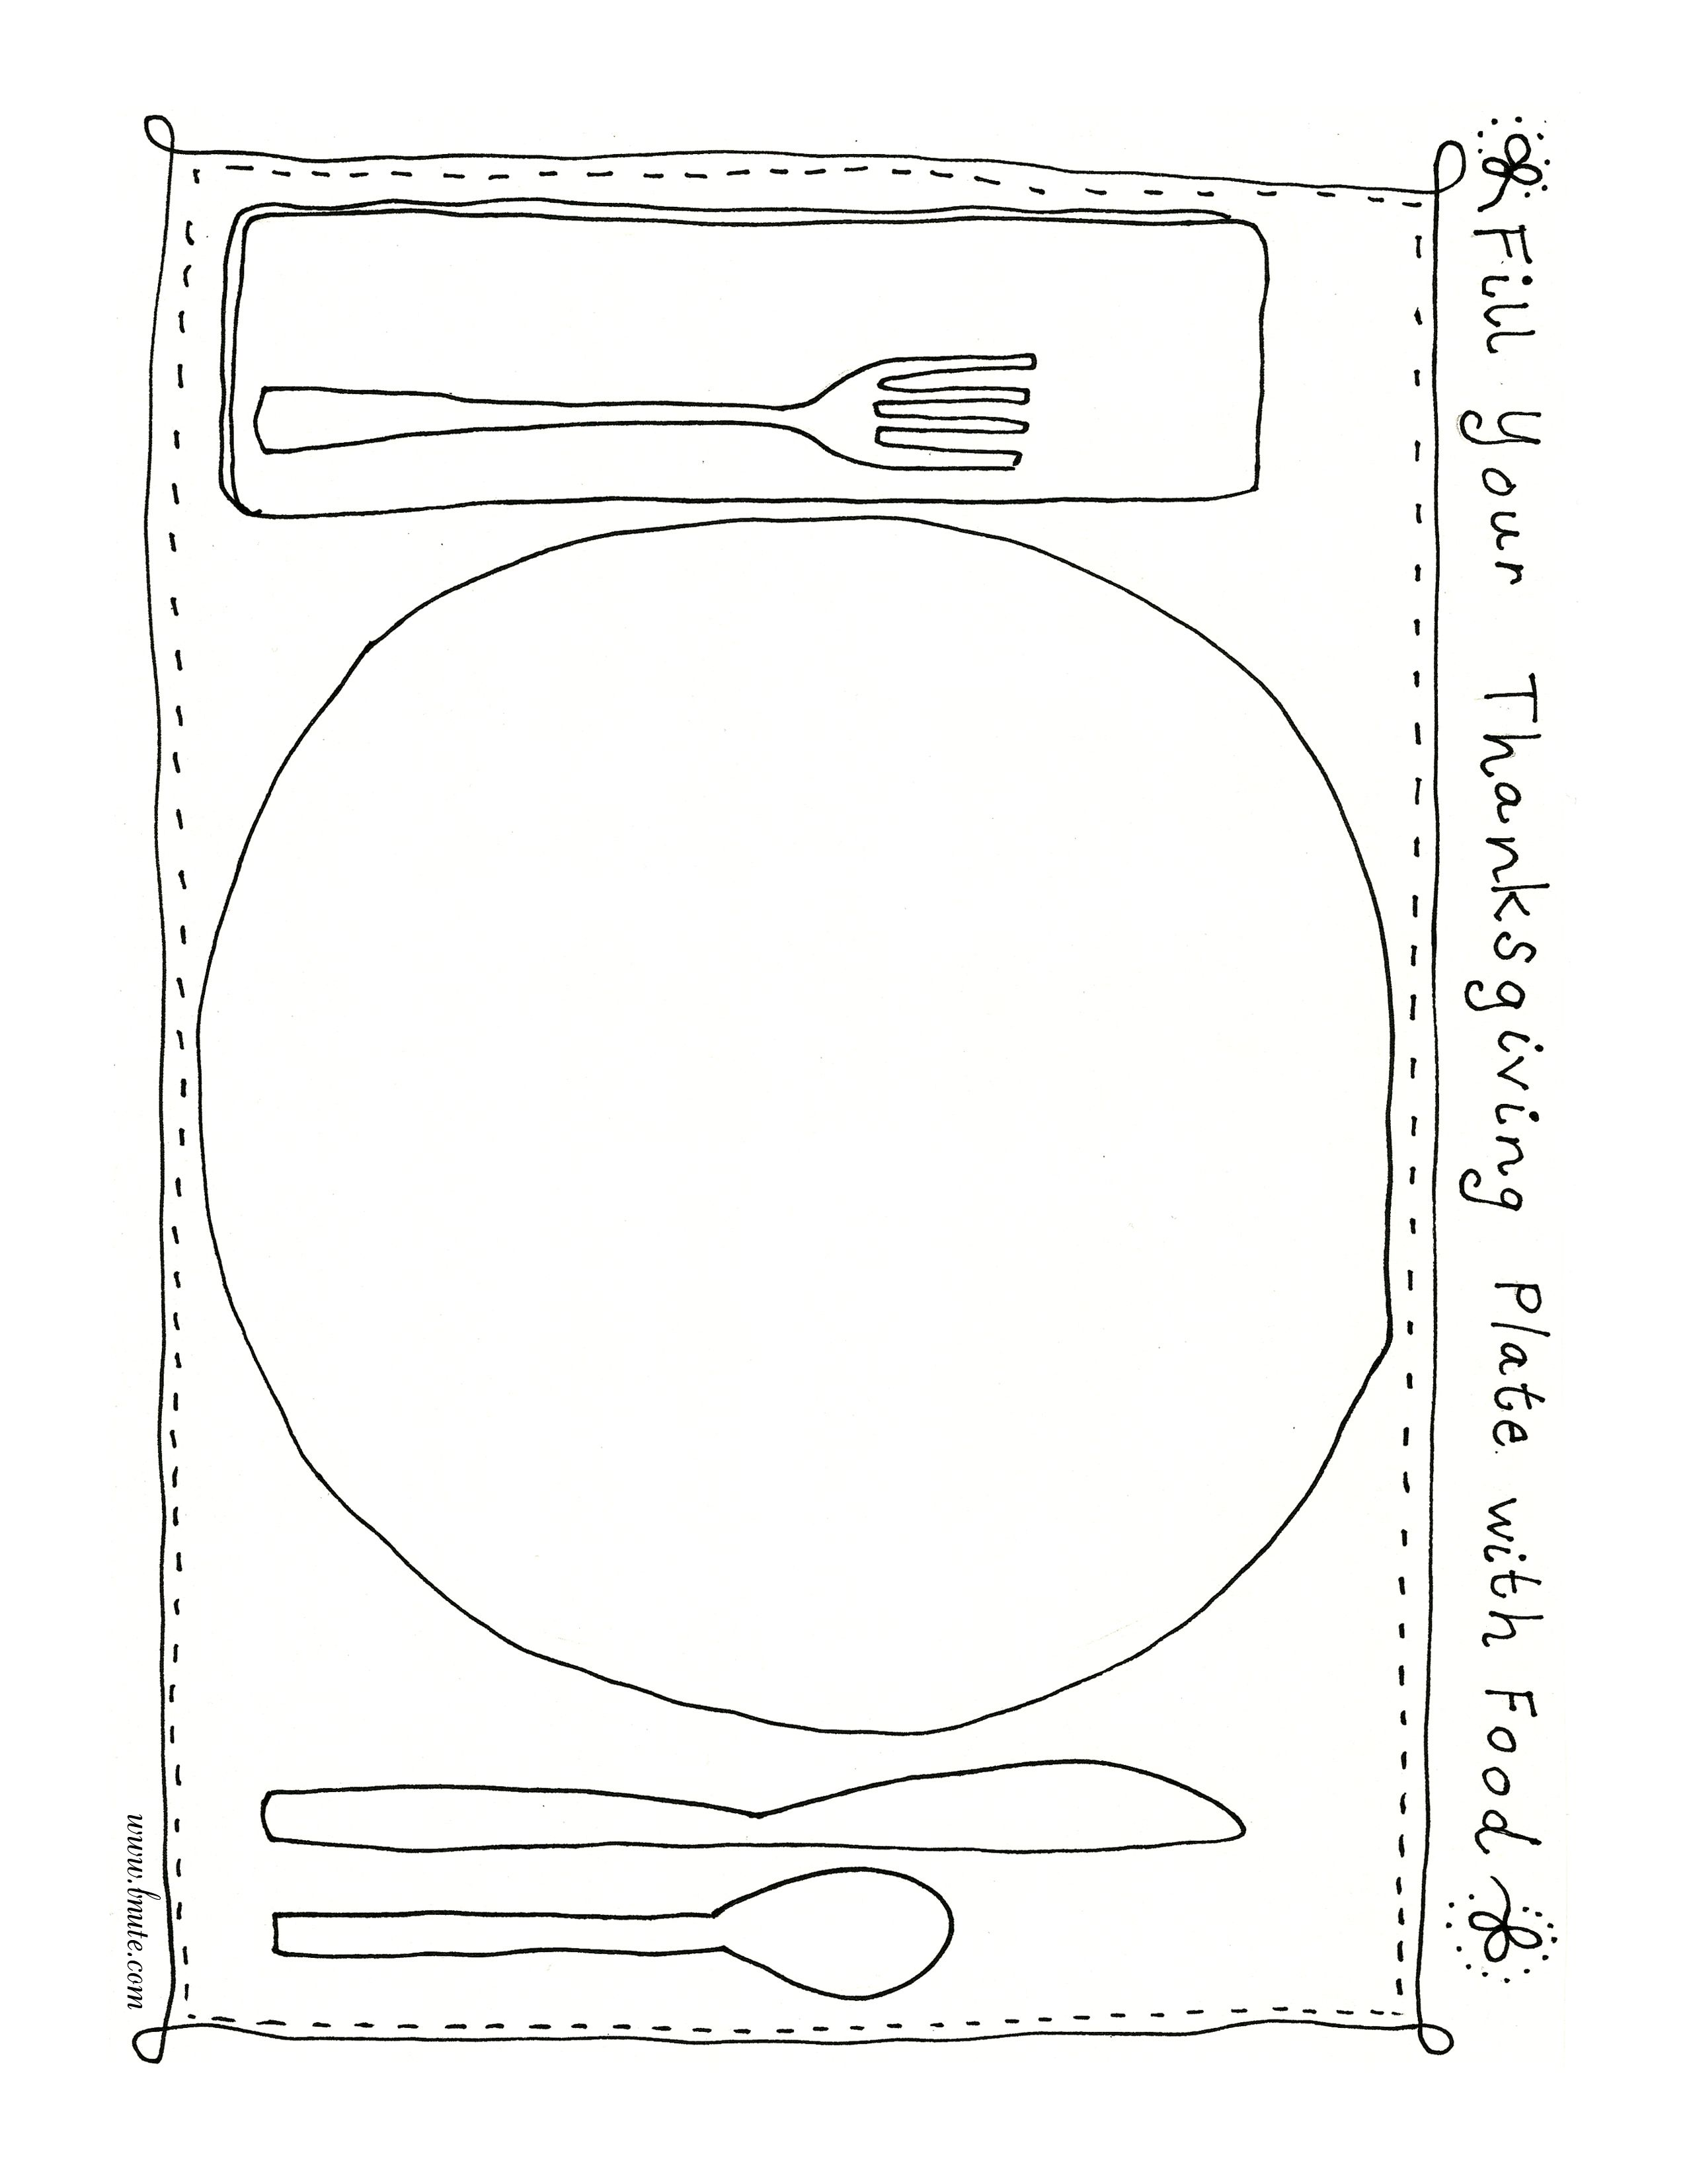 my plate coloring pages for preschool Fill Your